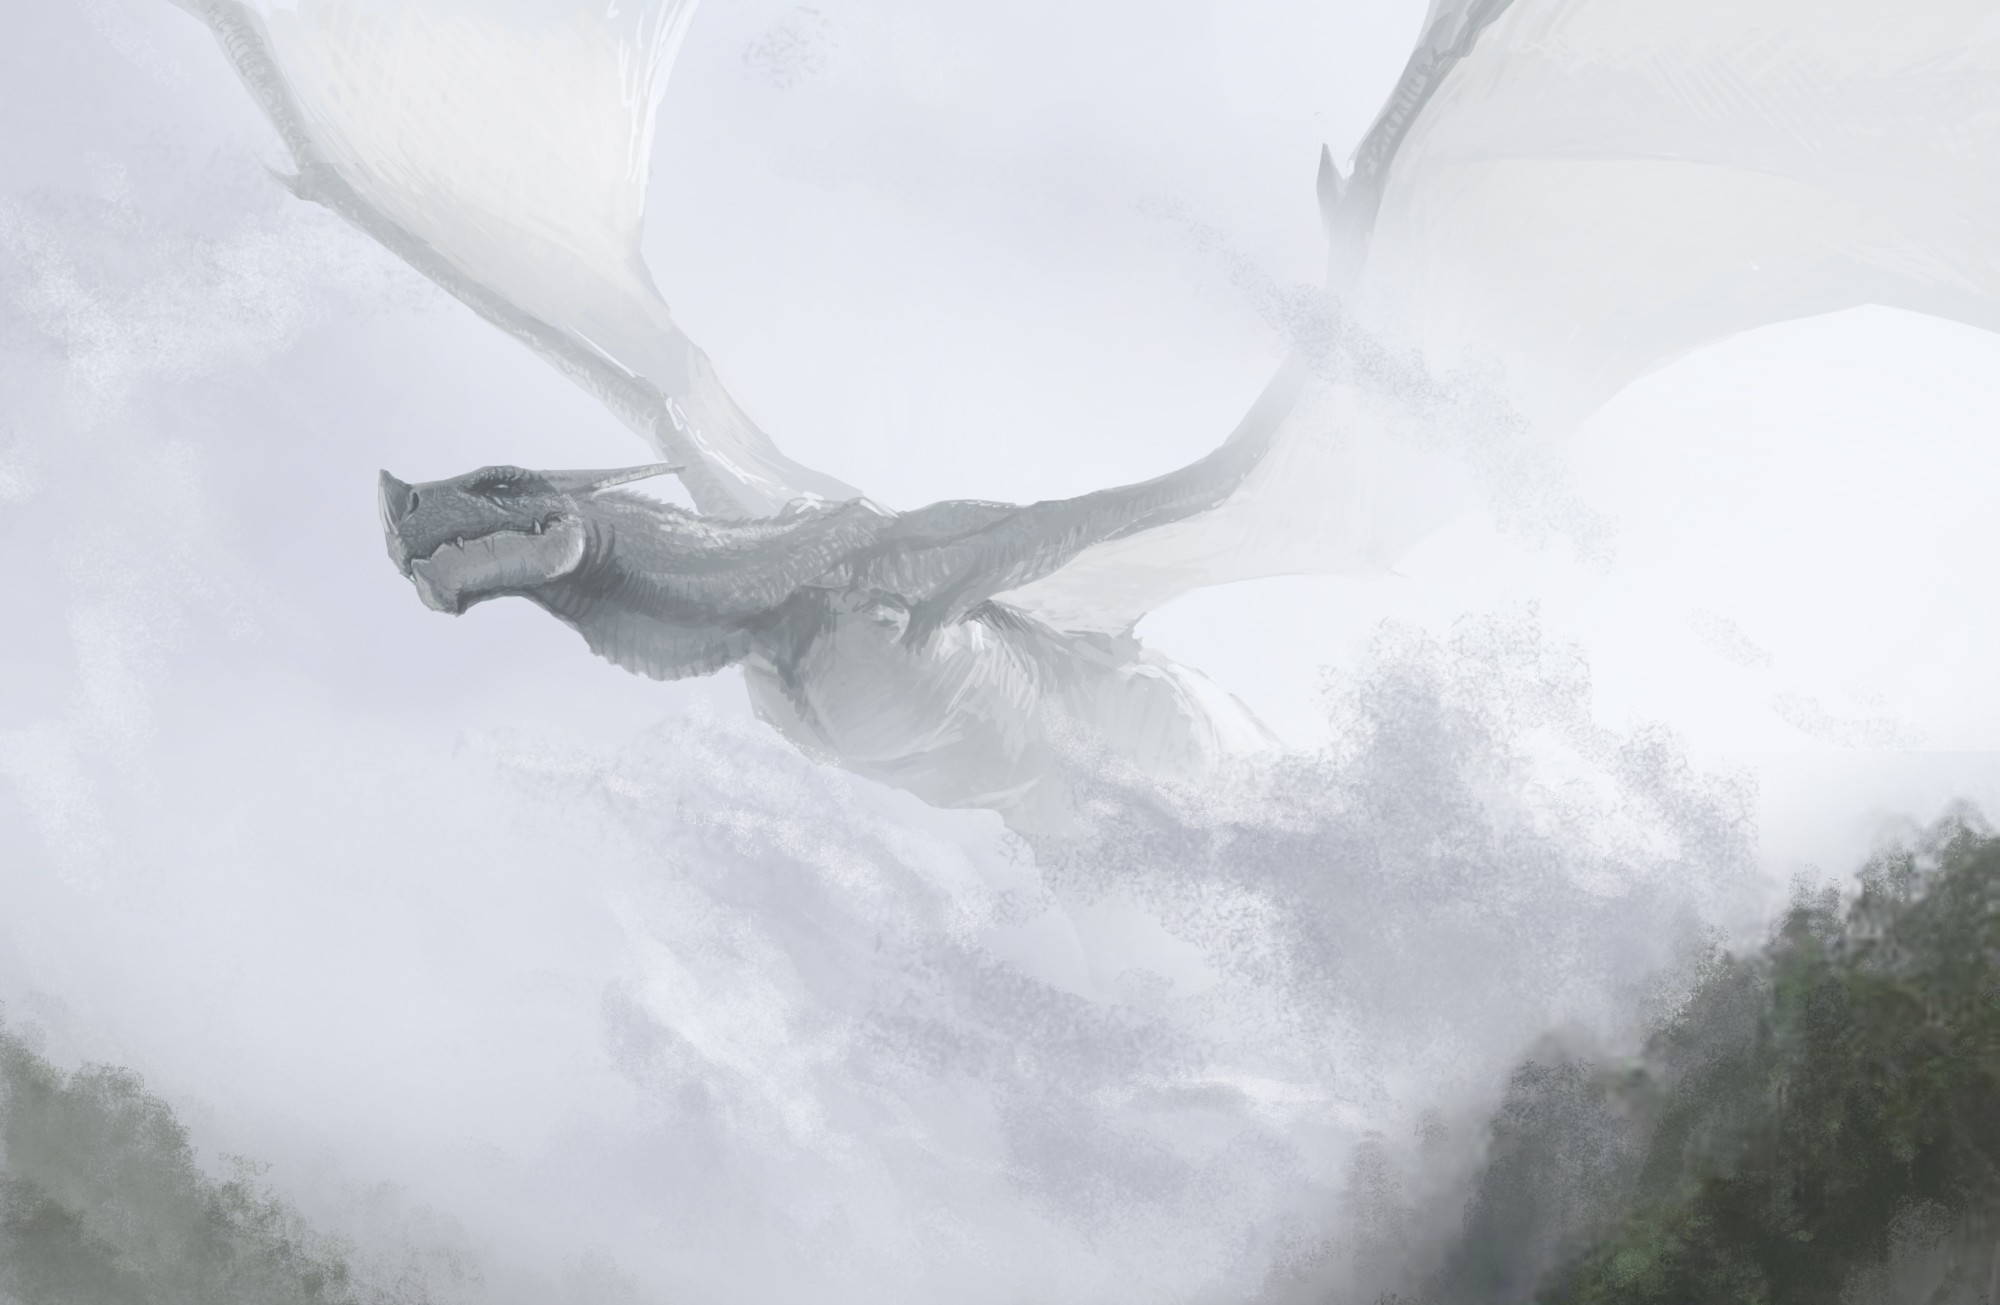 Flying Fantasy Dragons Wallpapers HD I HD Images 2000x1305